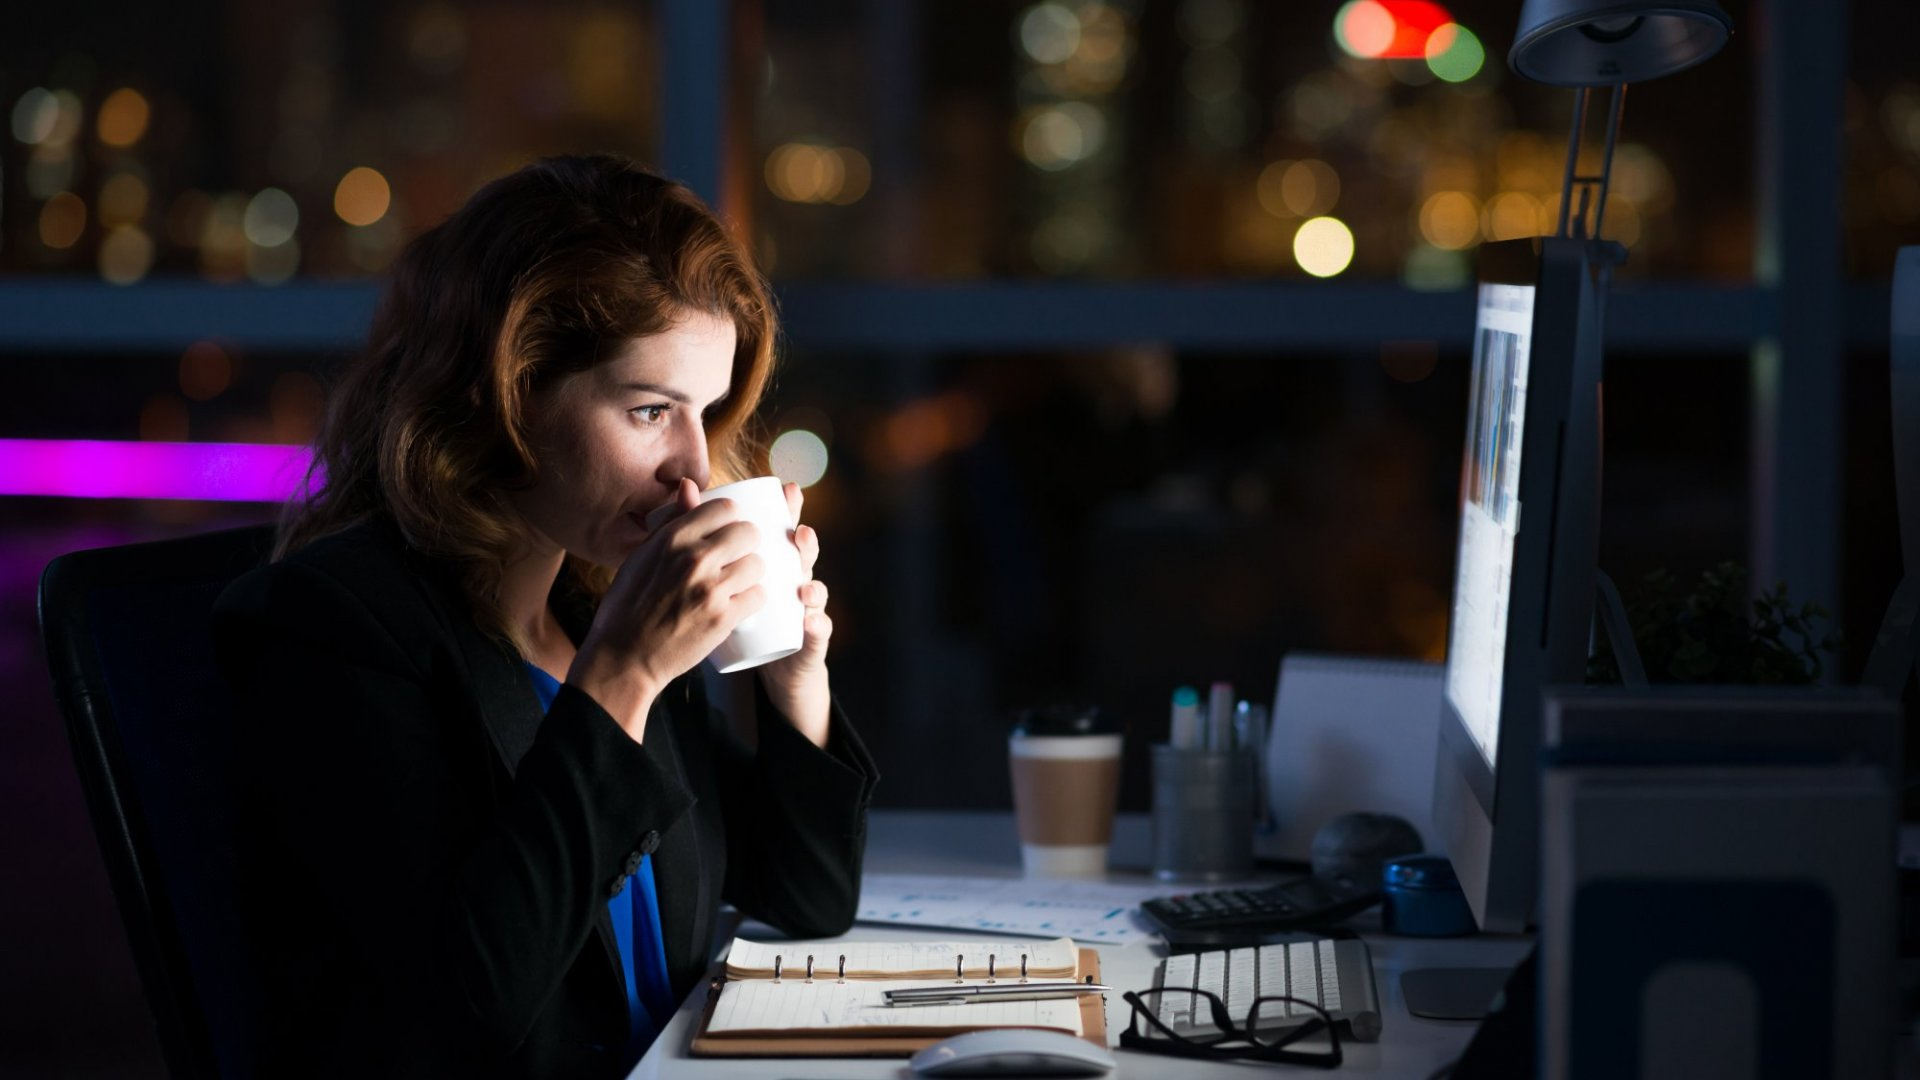 5 Ways Night Owls Can Flourish in Their 9 to 5 Workday